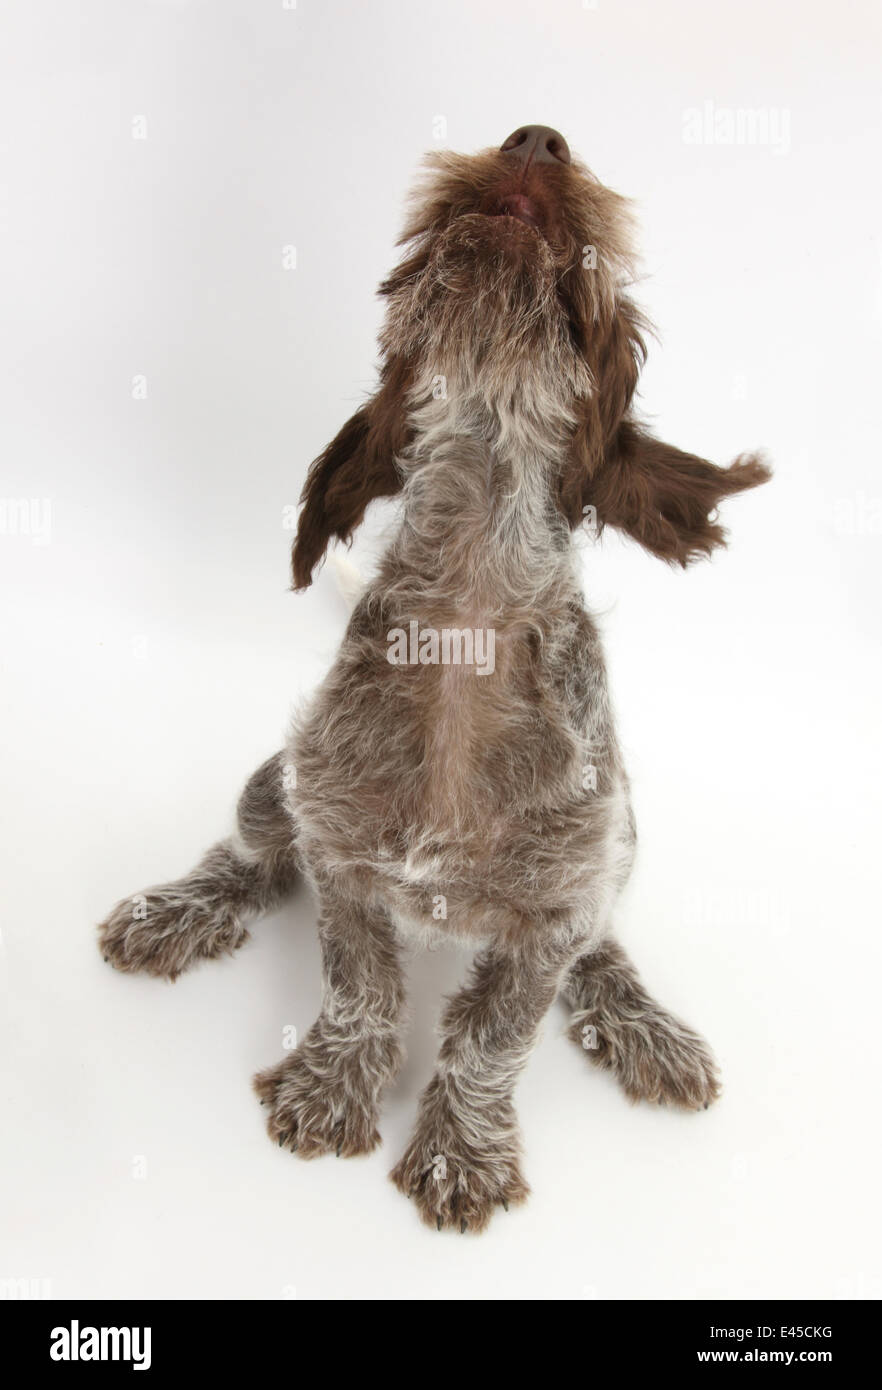 Image of italian spinone brown roan young puppy blue sitting cute - Brown Roan Italian Spinone Puppy Riley 13 Weeks Sitting Looking Up Stock